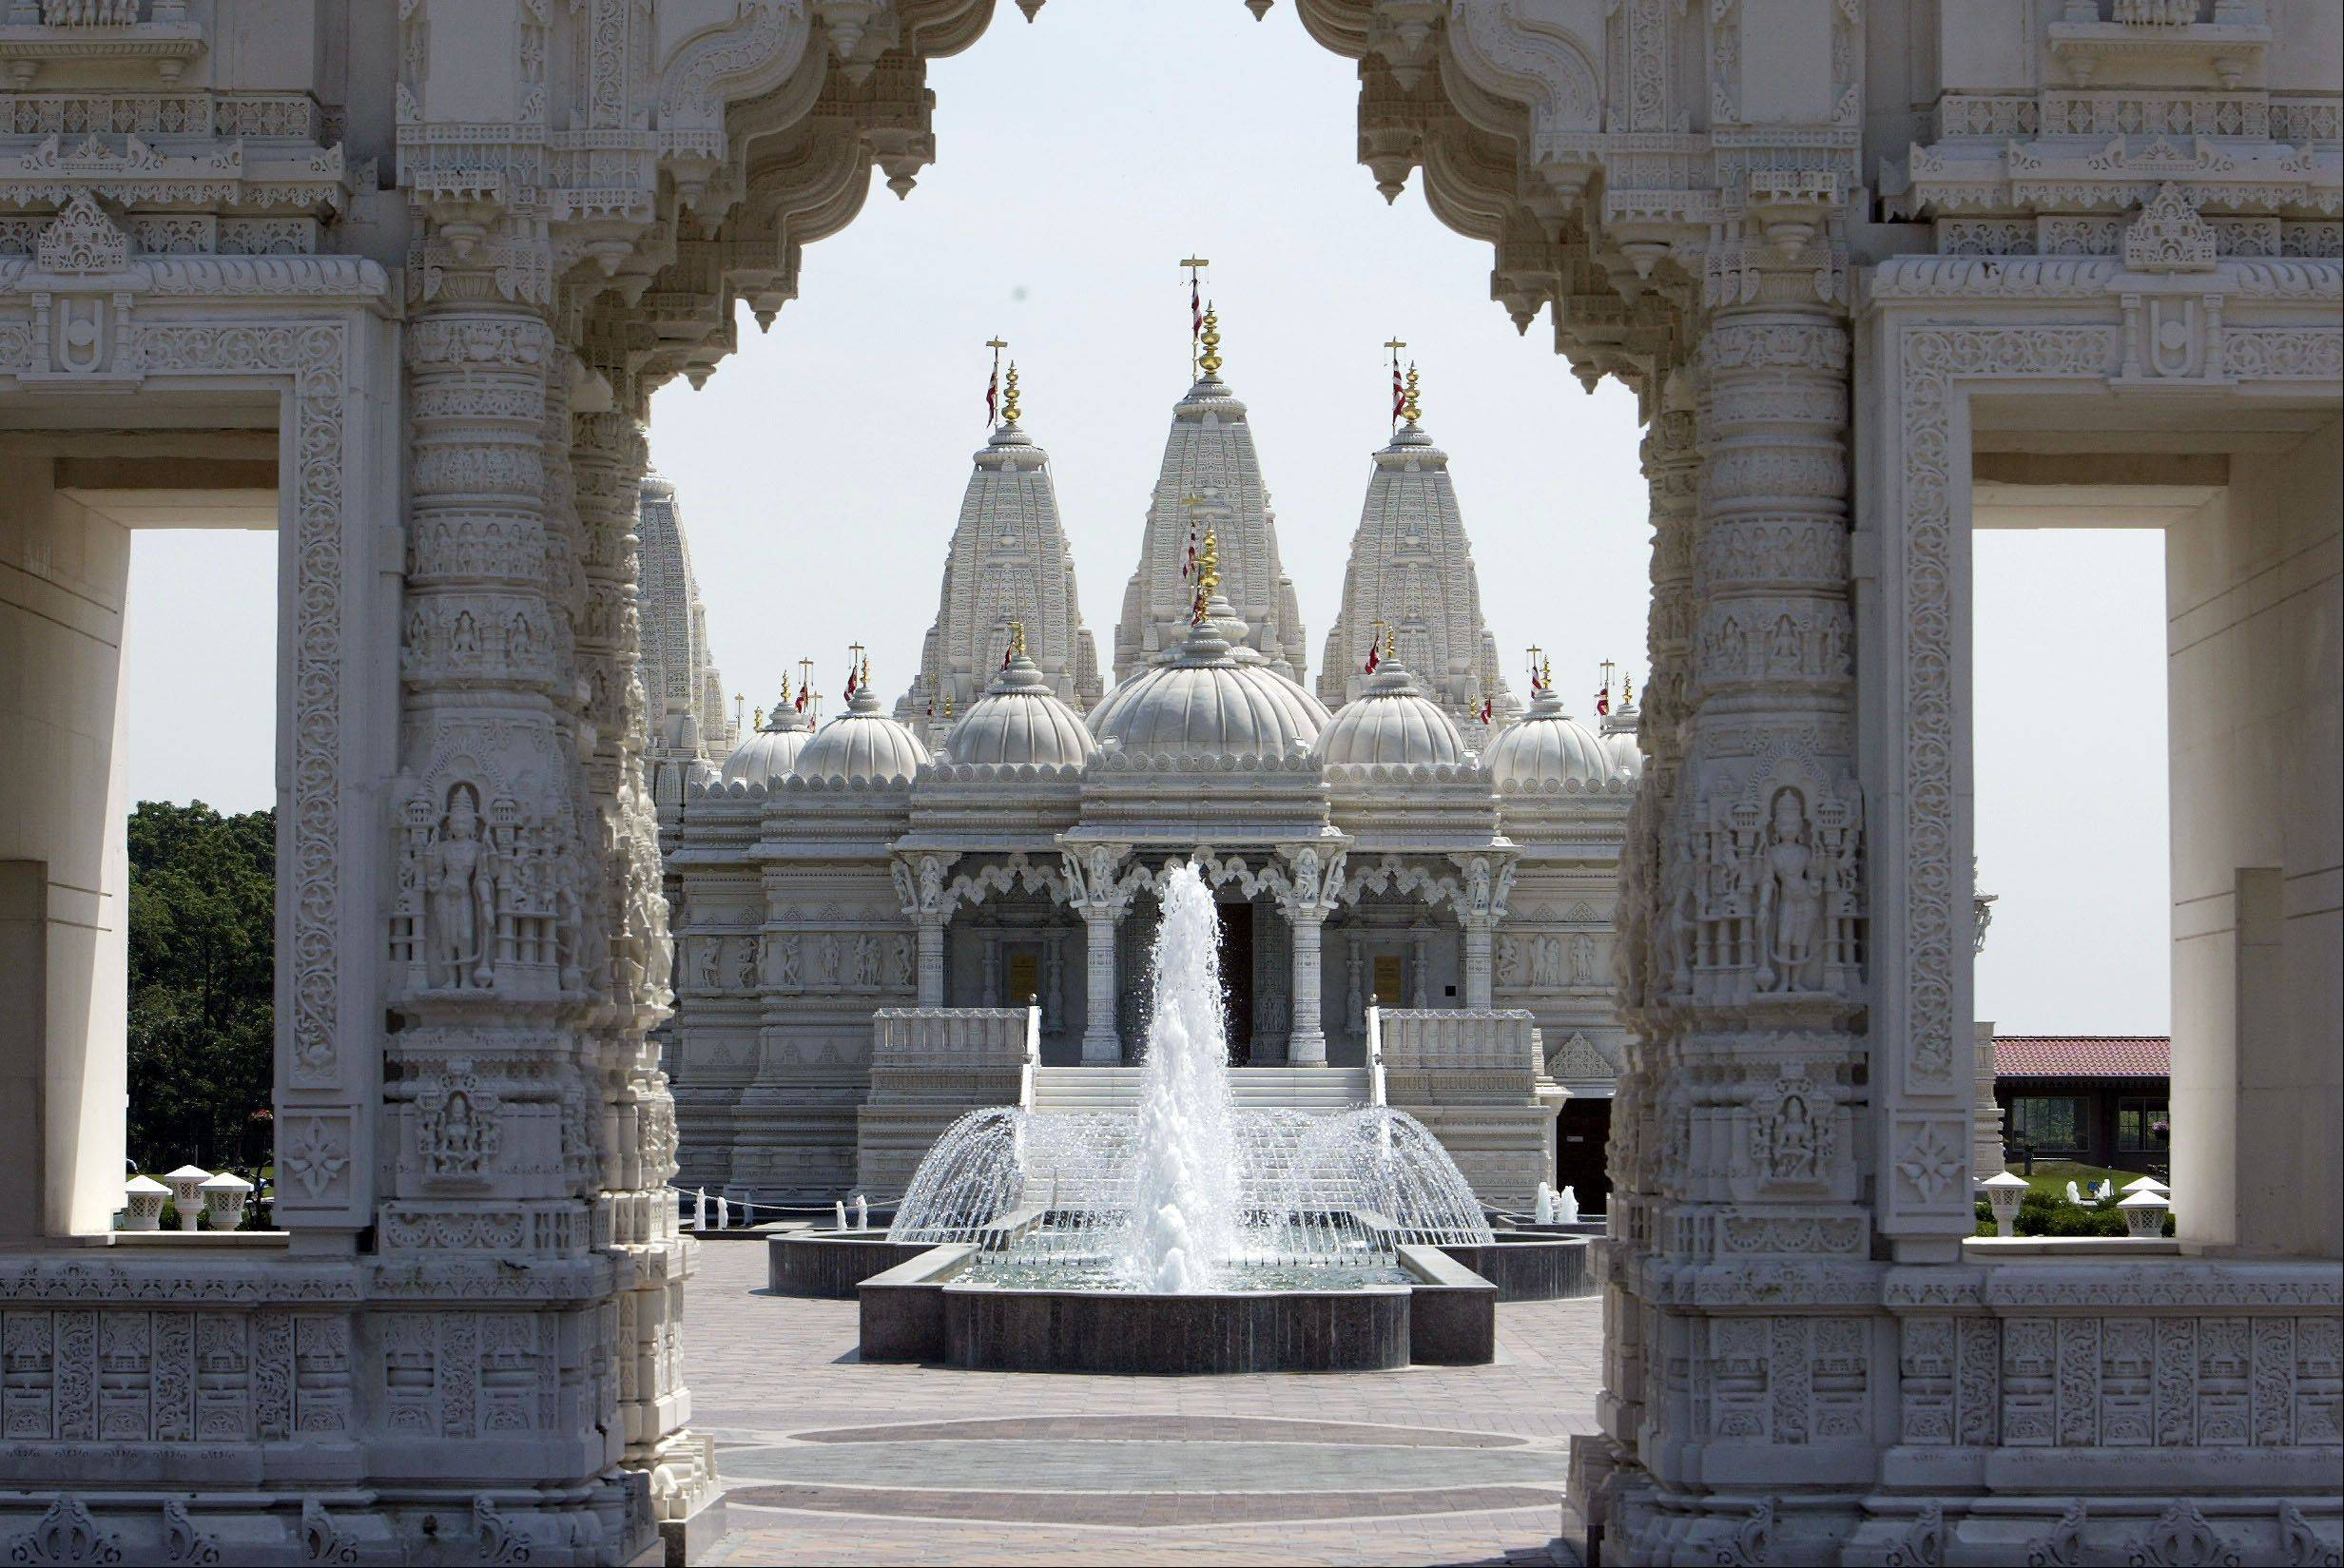 Representatives from BAPS Shri Swaminarayan Temple near Bartlett are hoping to have almost 39 acres, which include a Hindu temple and number of other buildings, annexed into the village. They hope to be connected to the municipal water supply and eventually develop the remaining land for religious and commercial purposes.